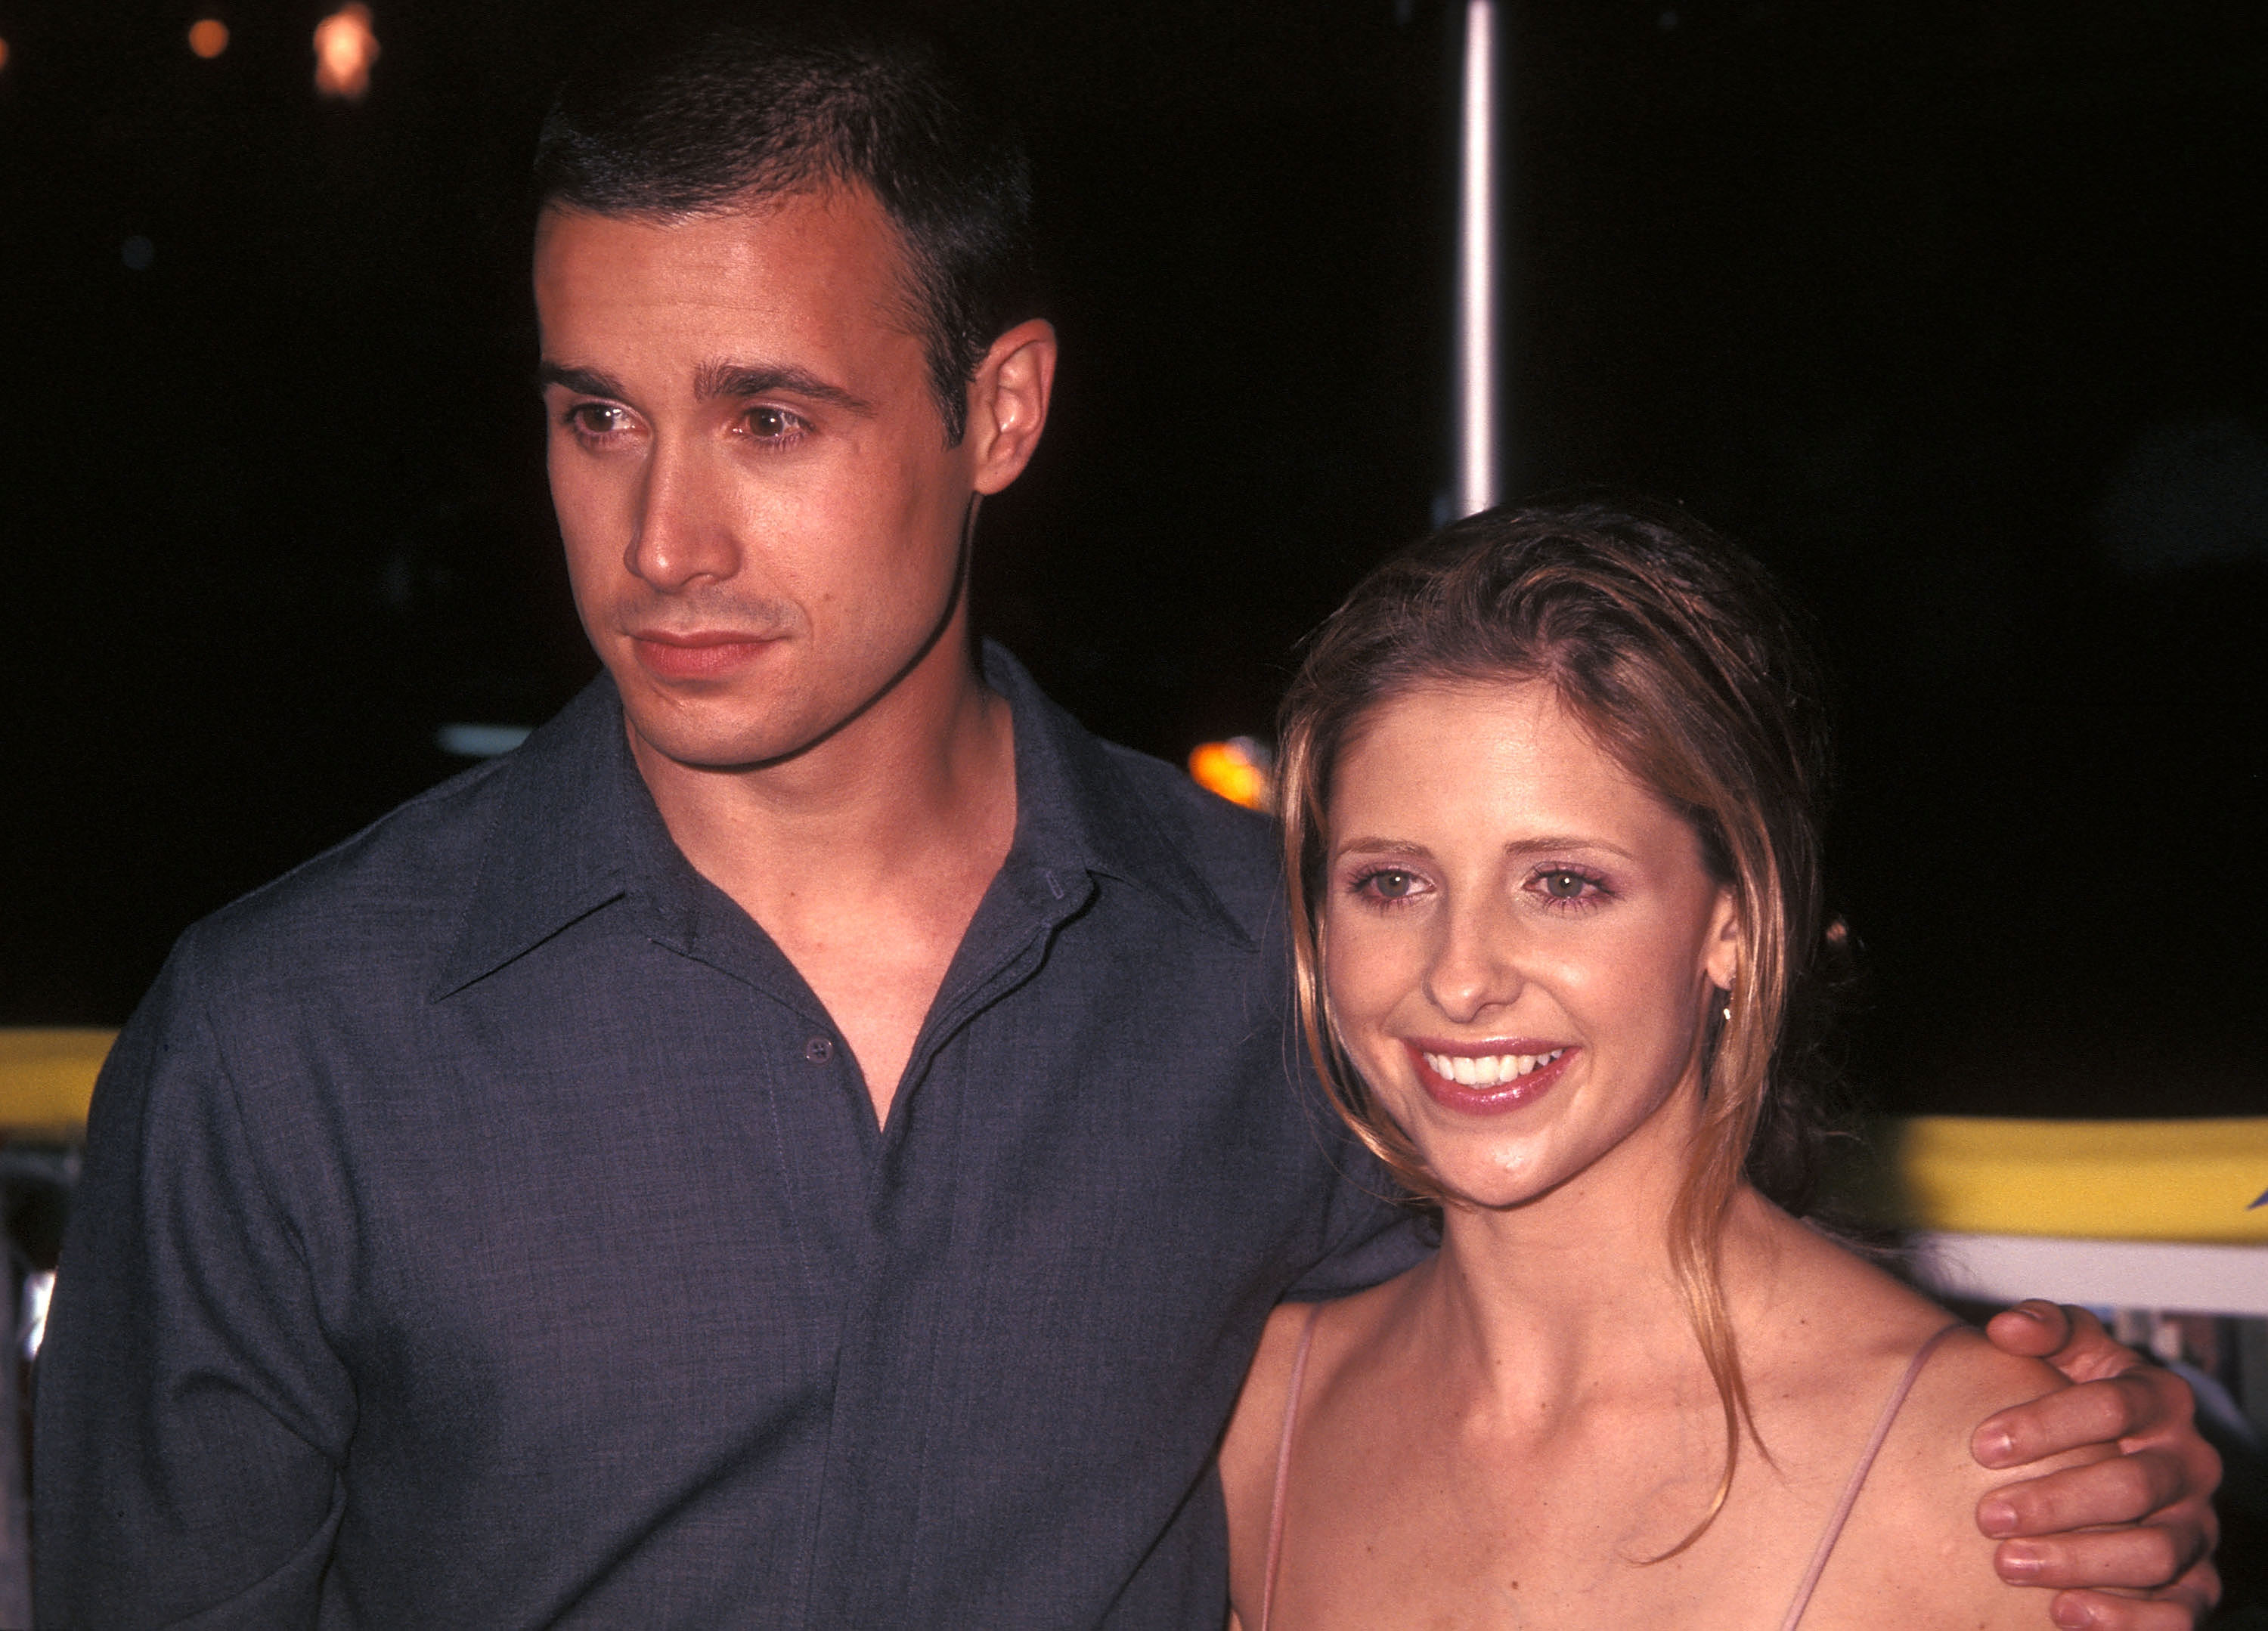 Freddie Prinze Jr. remembers his first date with Sarah Michelle Gellar, and awww guys!